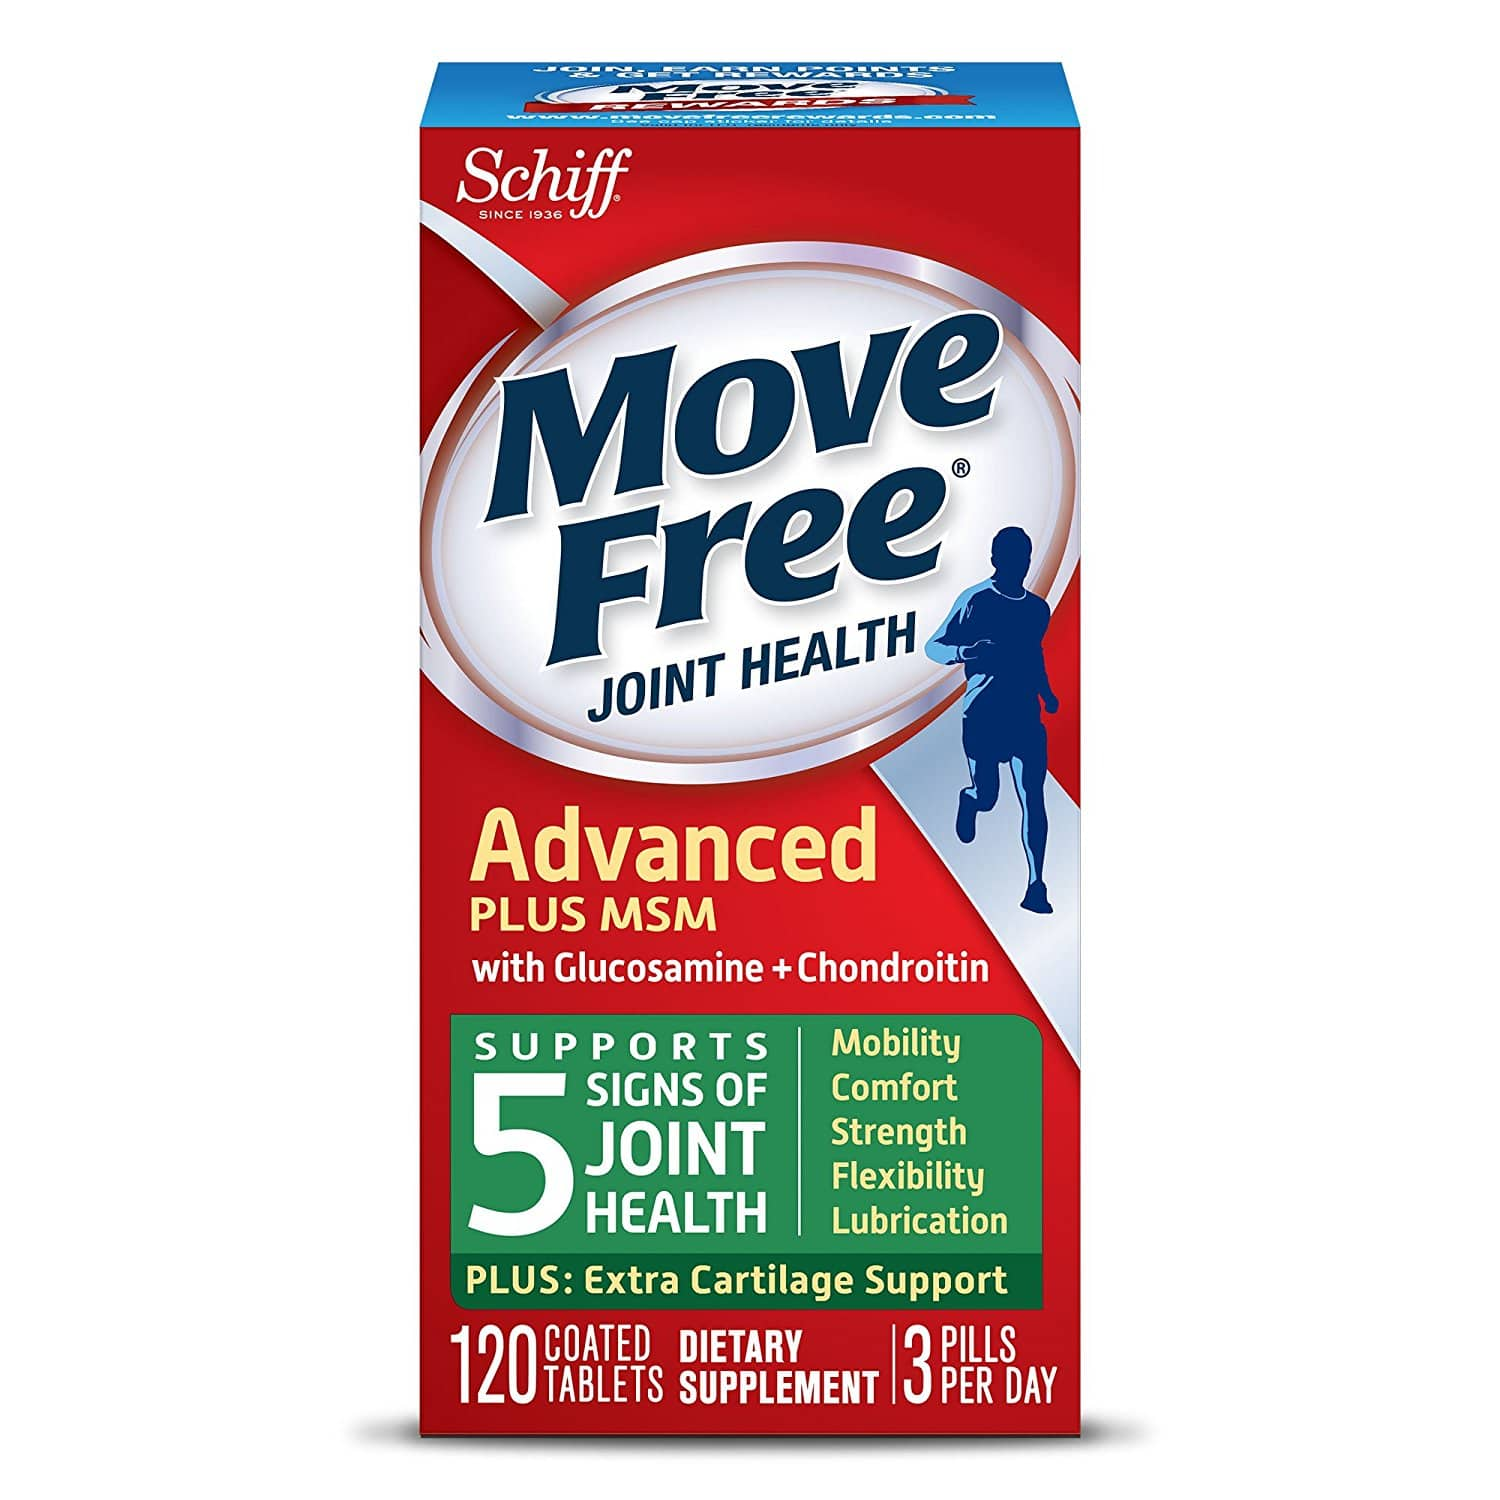 Move Free Advanced Plus MSM, 120 tablets - Joint Health Supplement with Glucosamine and Chondroitin [120 Count] $12.63